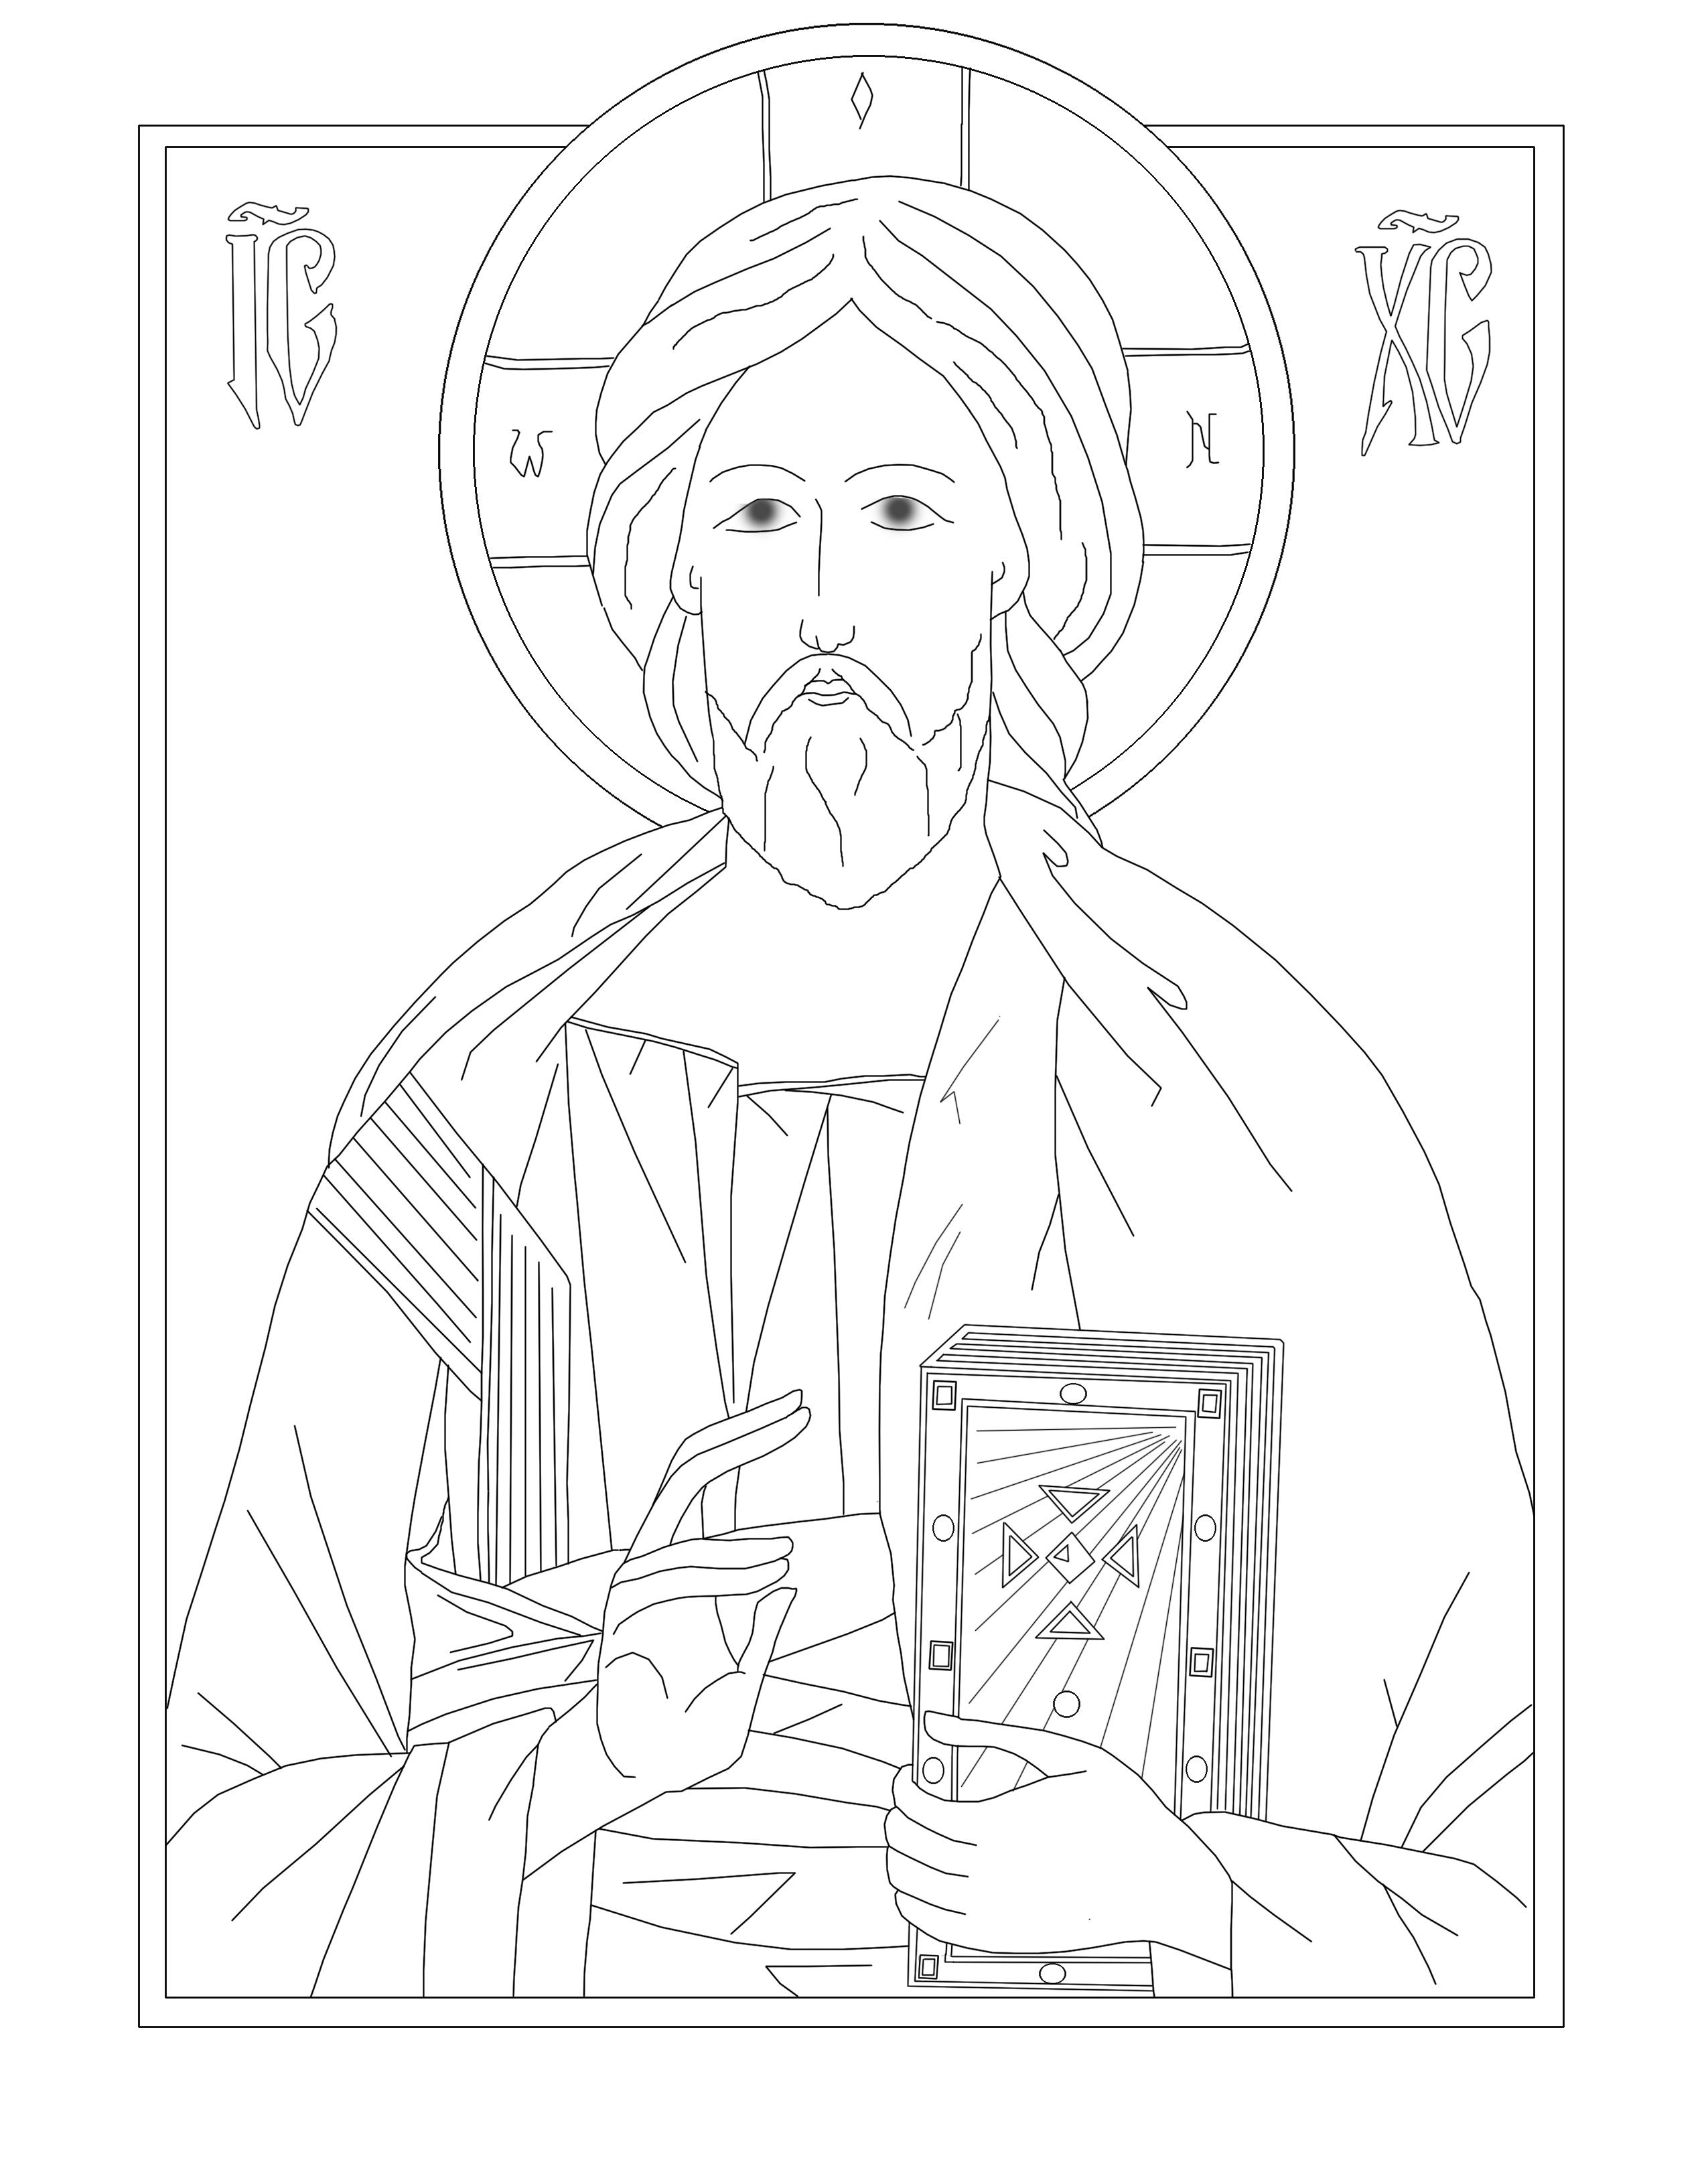 Byzantine icon coloring page of christ the teacher at ss joachim and anna ukrainian catholic church byzantine icon coloring pages catholic coloring pages